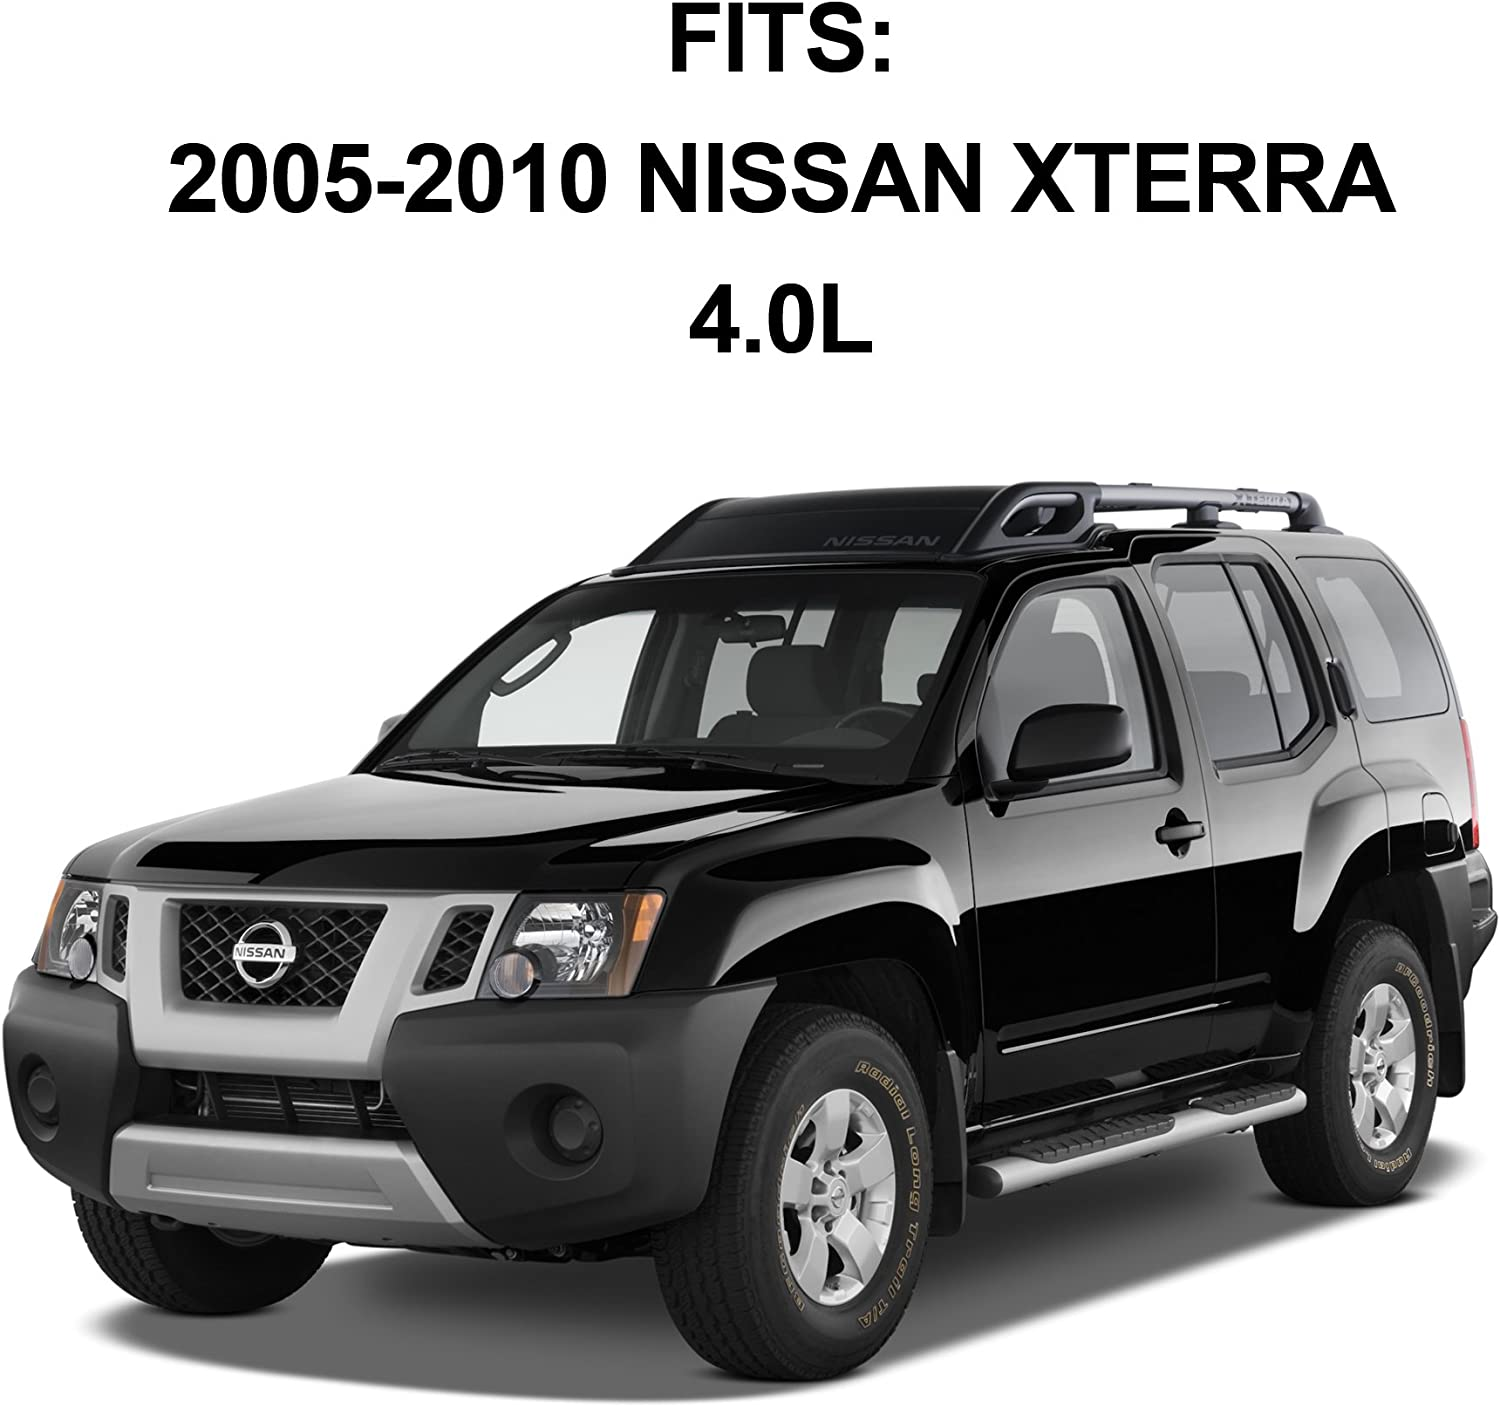 Catalytic Converter Replacement Front Passenger Side Pre-Cat 2005-2010 Nissan Pathfinder Direct Fit OBDII with Gaskets /& Bolts Included Xterra 4.0L Frontier